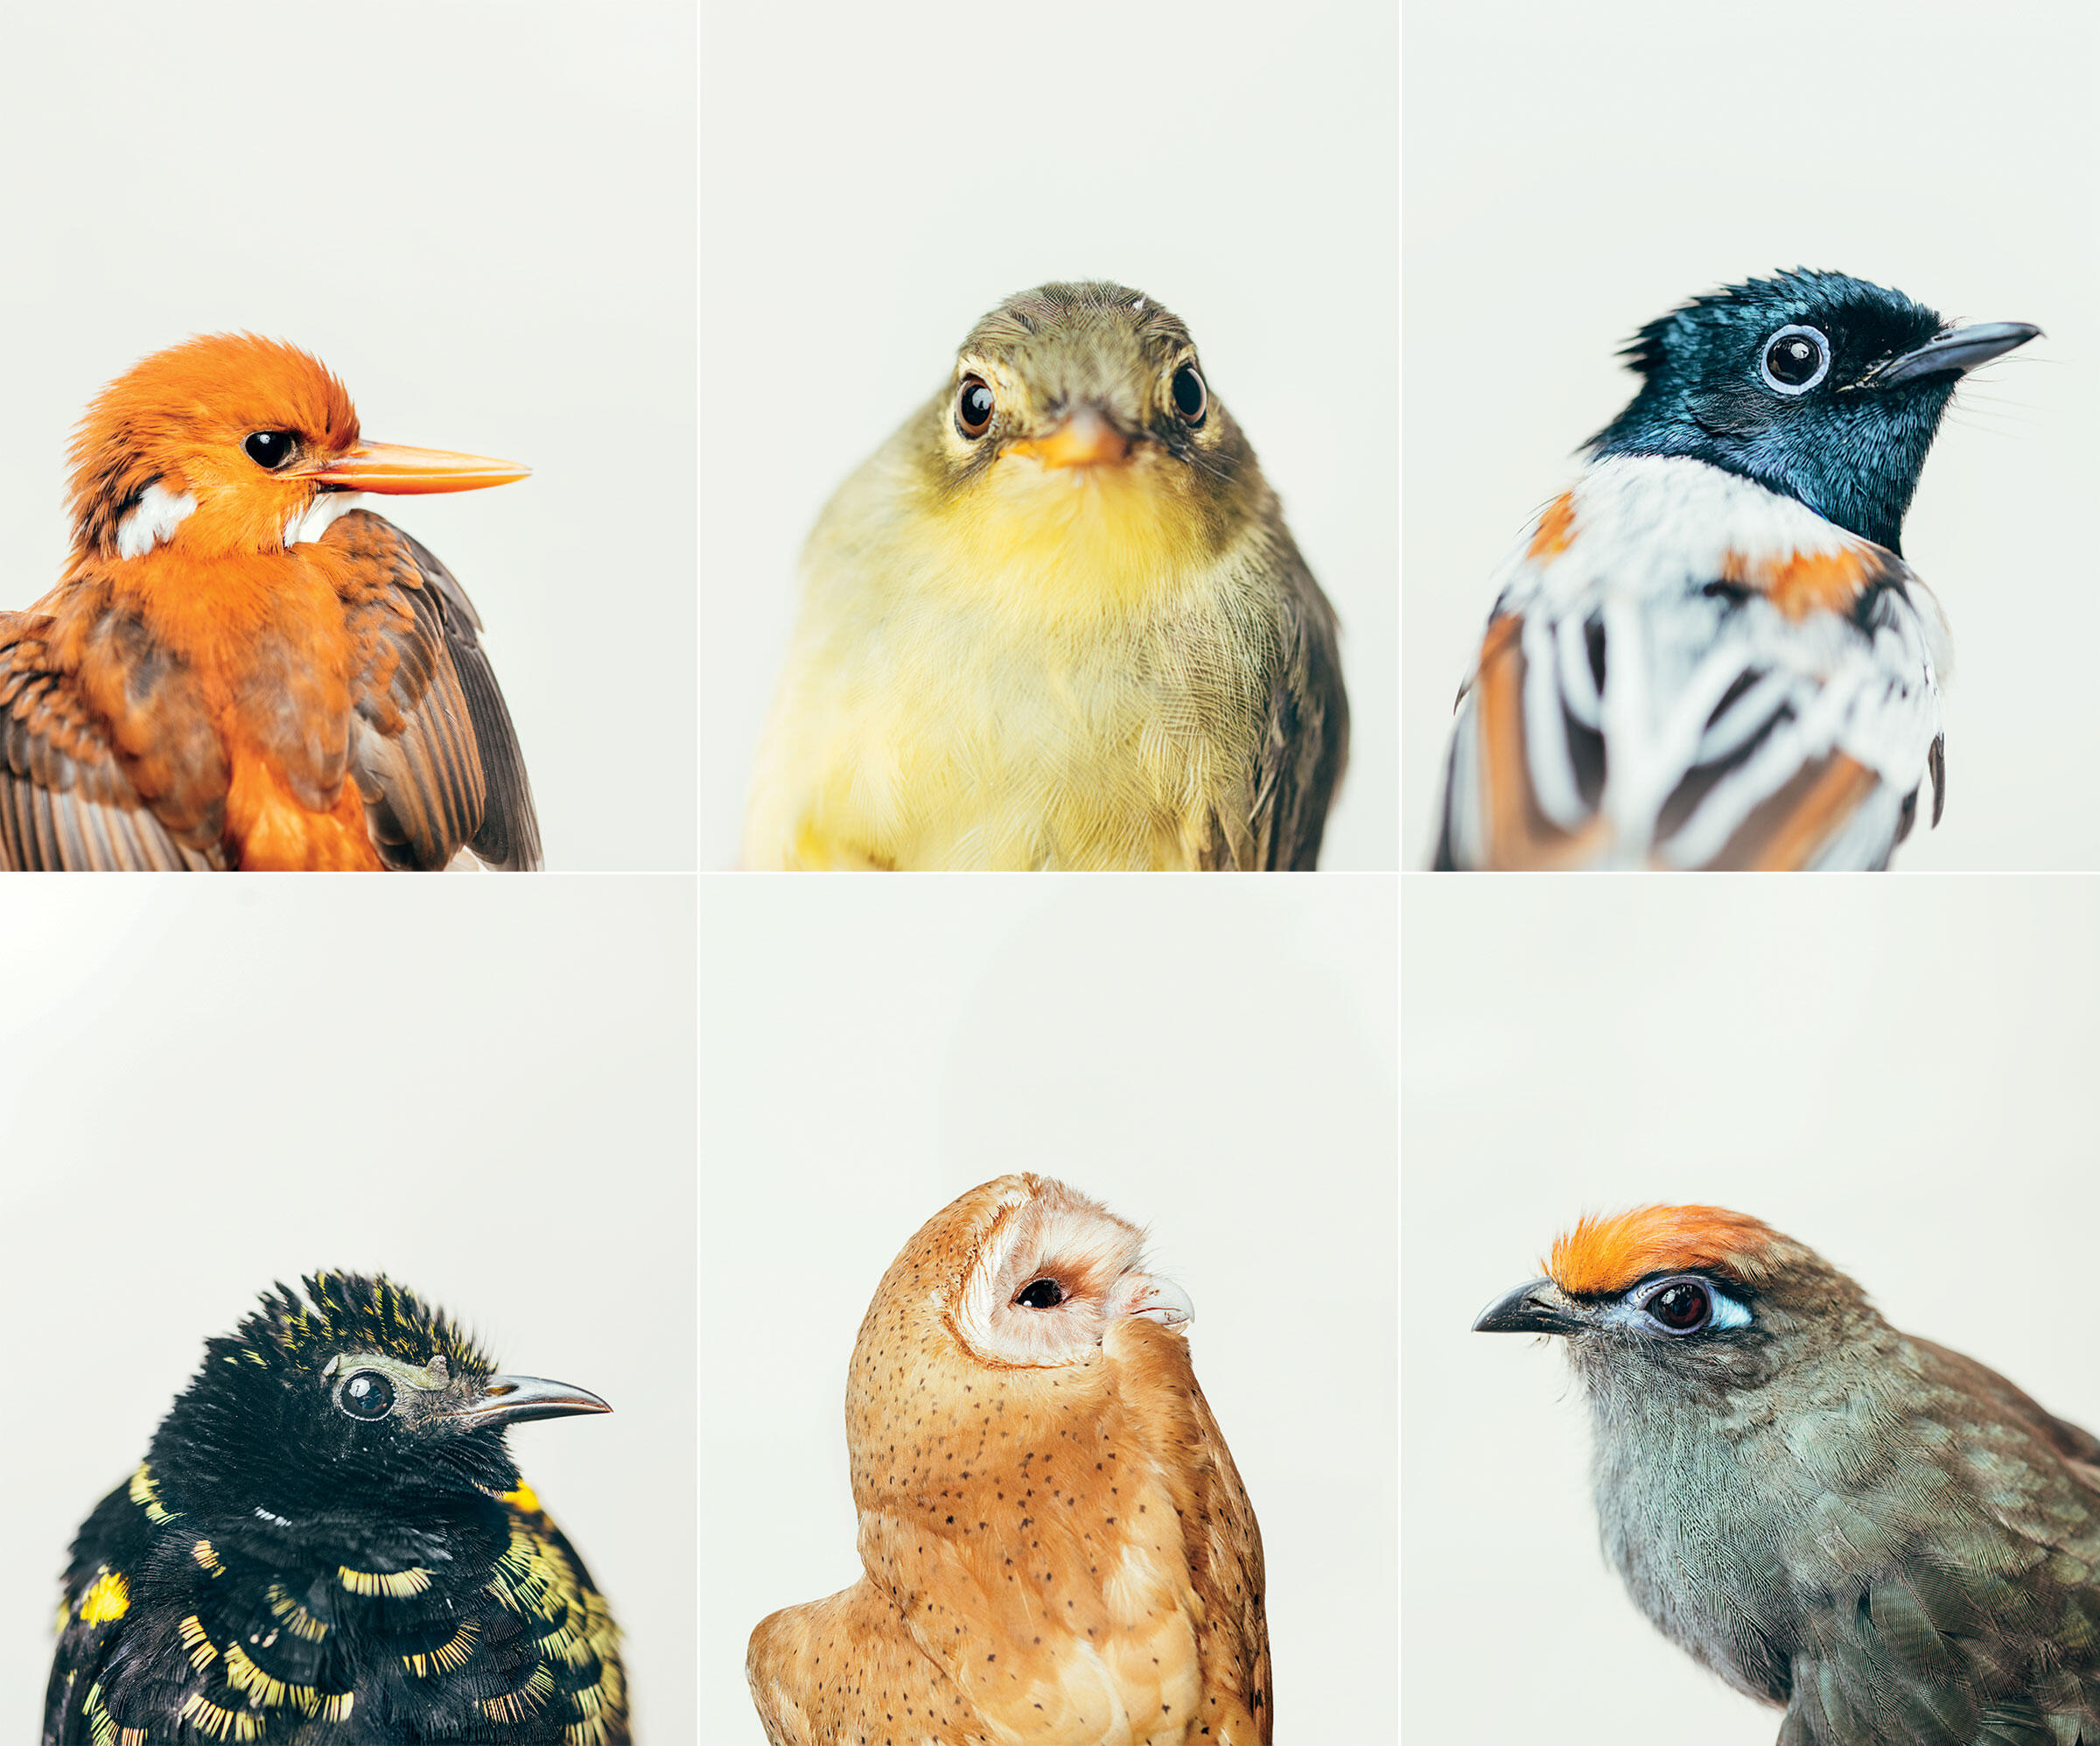 Clockwise form top left: Madagascar Pygmy-Kingfisher; Spectacled Tetraka; Madagascar Pygmy-Kingfisher; Red-fronted Coua; Red Owl; Velvet Asity. Photos: Tristan Spinski